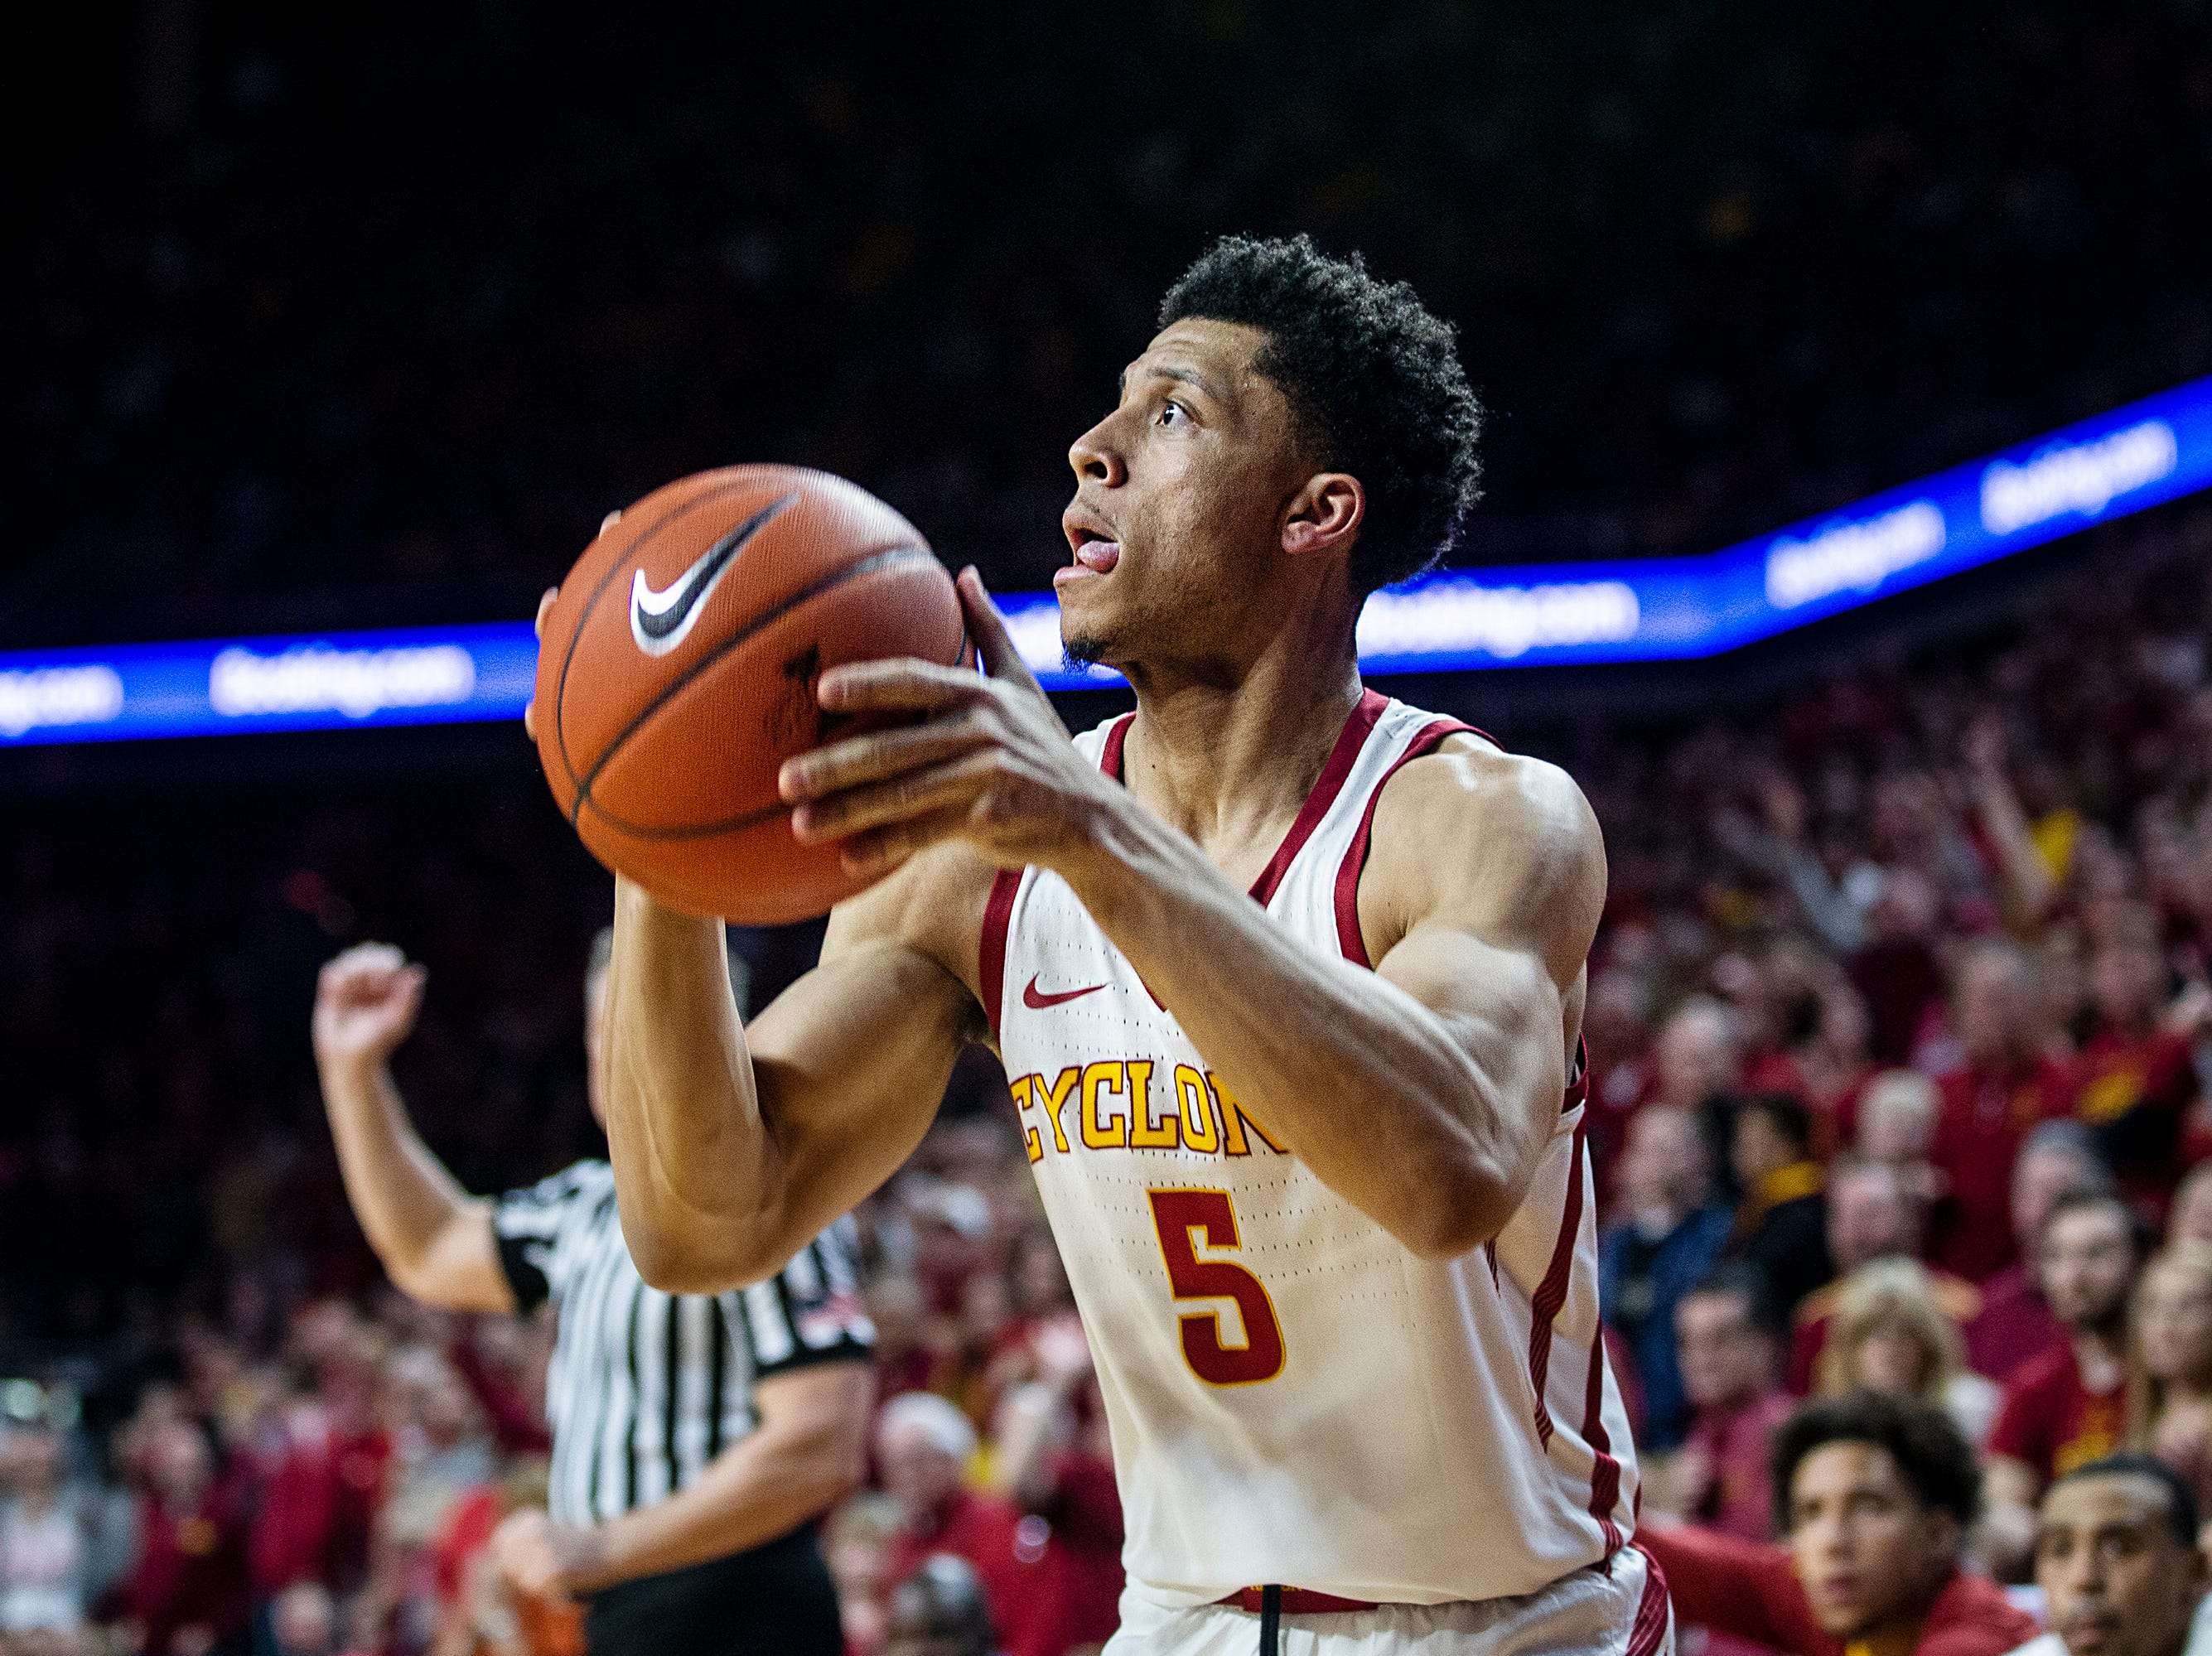 Iowa State's Lindell Wigginton shoots a three-point shot during the Iowa State men's basketball game against Texas on Saturday, Feb. 2, 2019, in Hilton Coliseum. The Cyclones defeated the Longhorns 65-60.